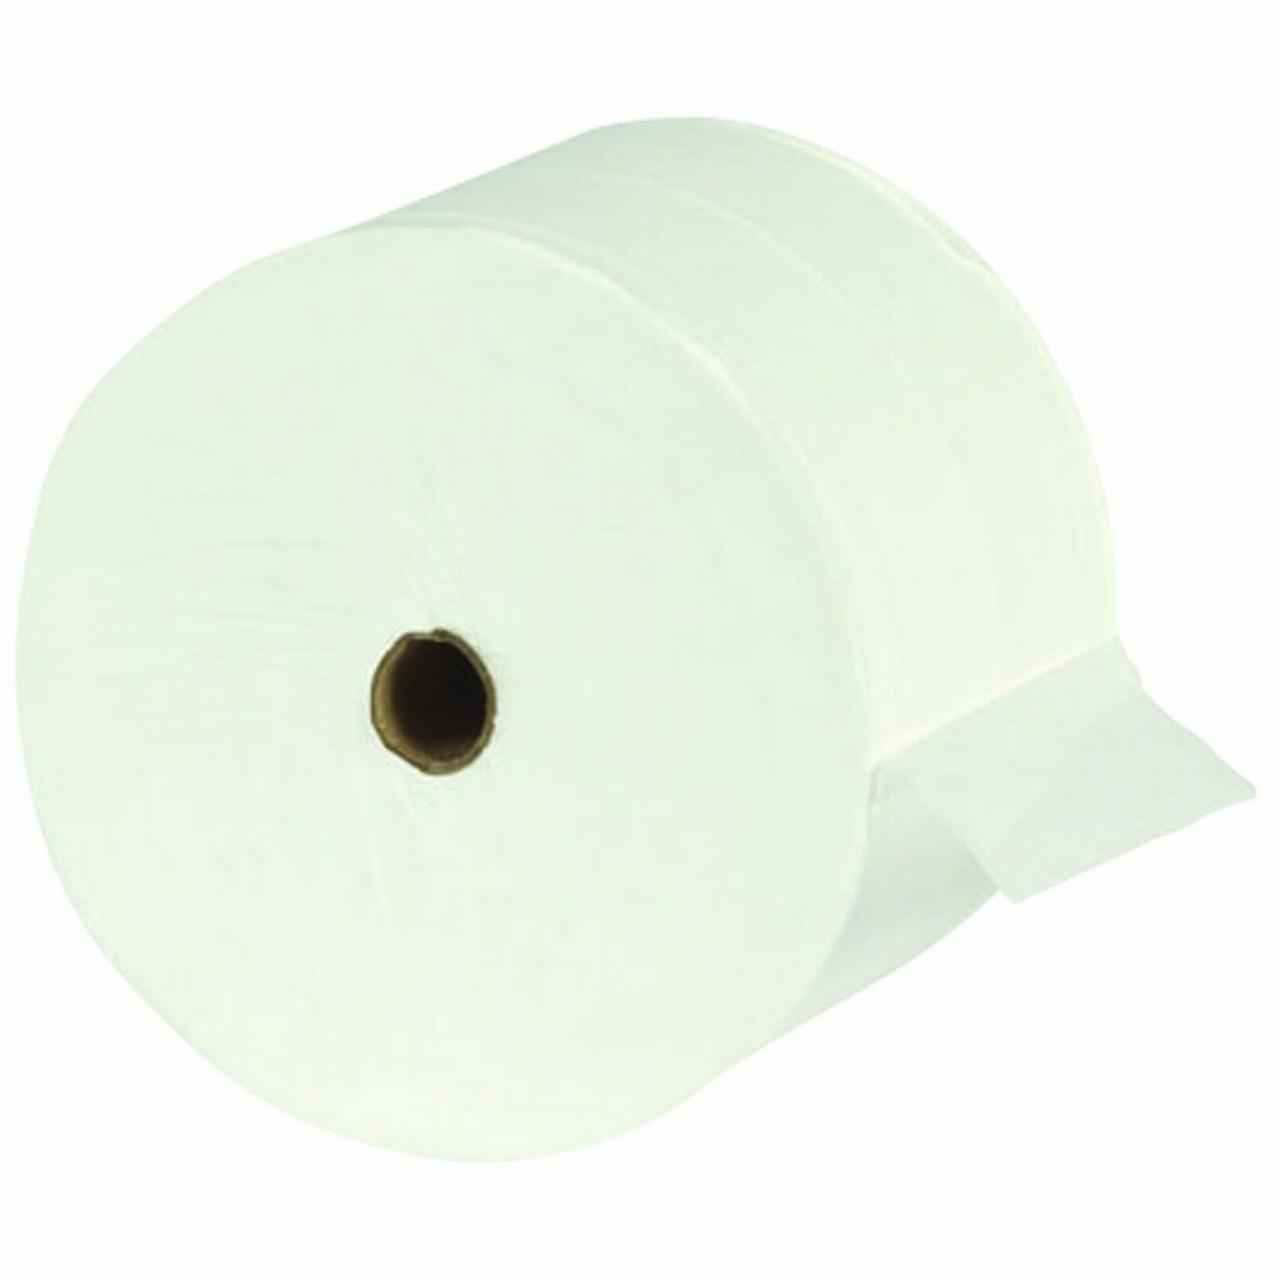 Sustainable Earth Small Core Bath Tissue 2-Ply 36//CT 1000 sheets per RL 293670